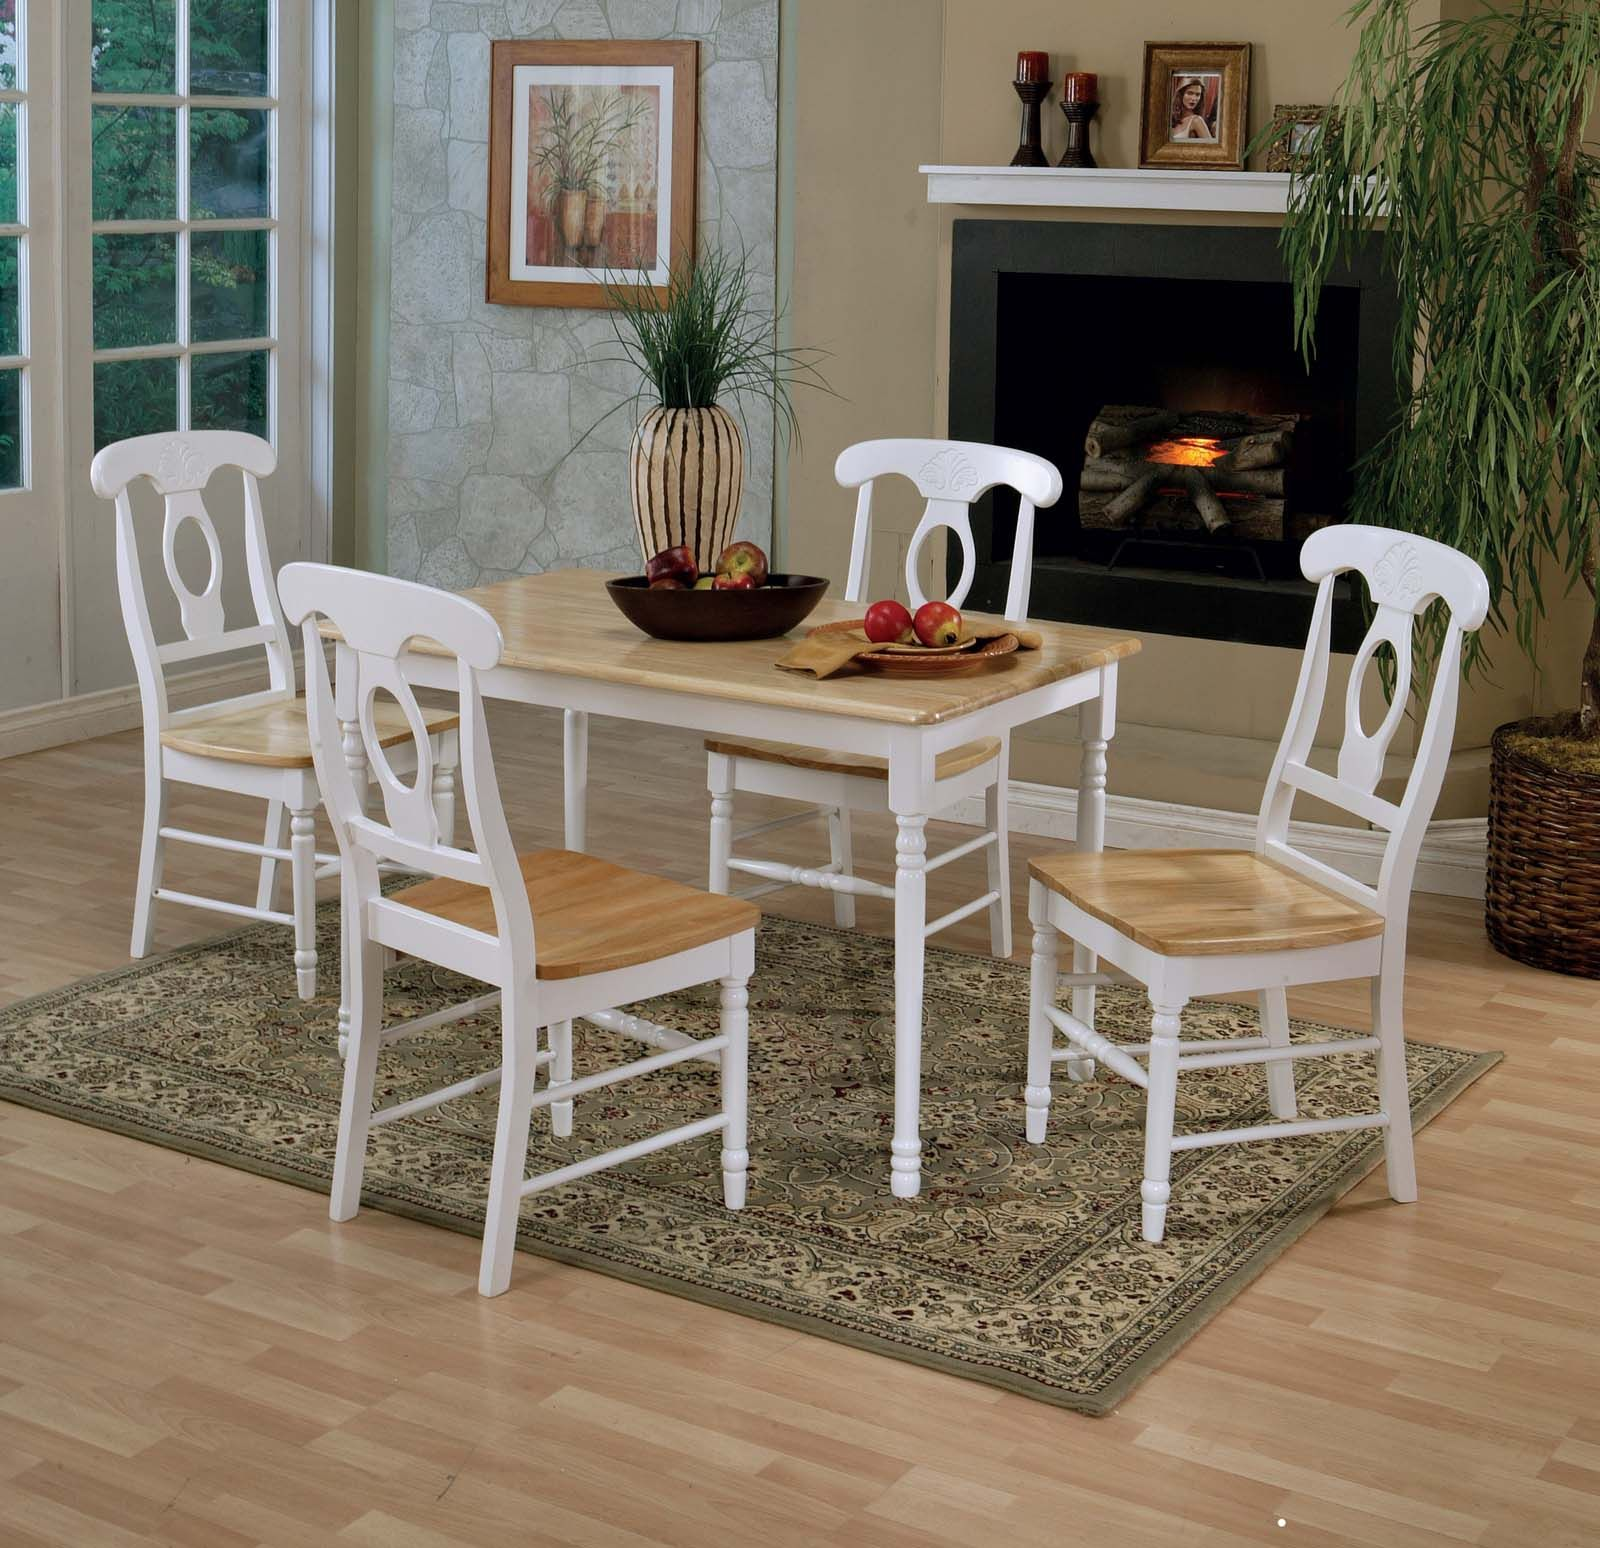 Coaster 5pc Dining Set in White and Natural Finish 4147